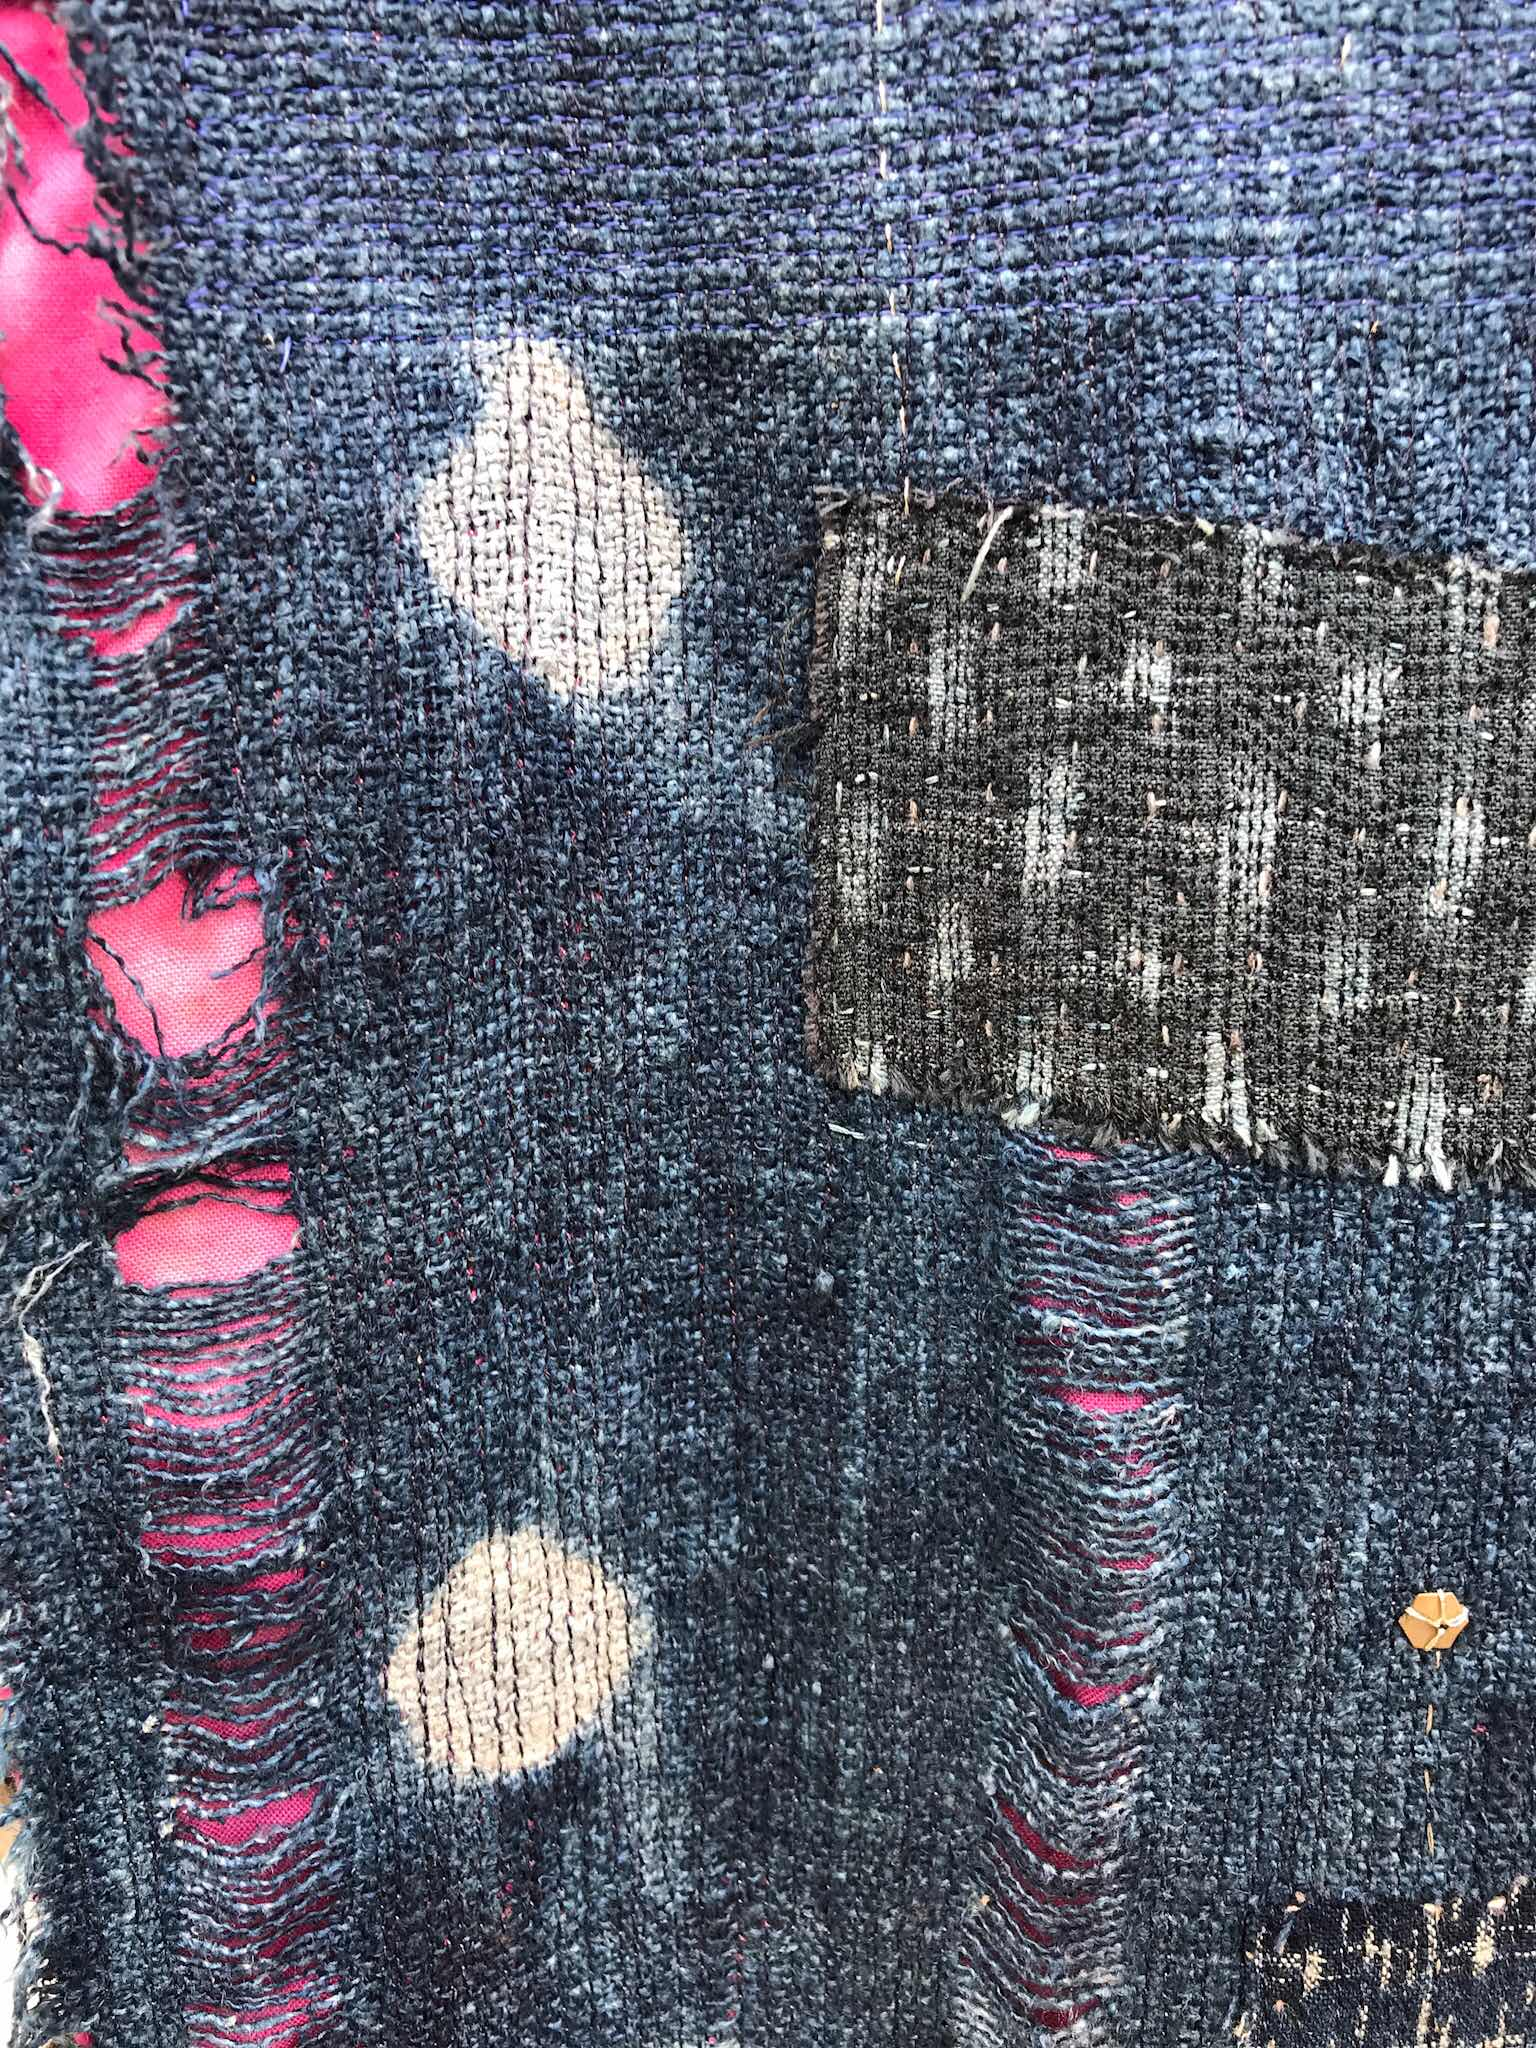 detail of textile